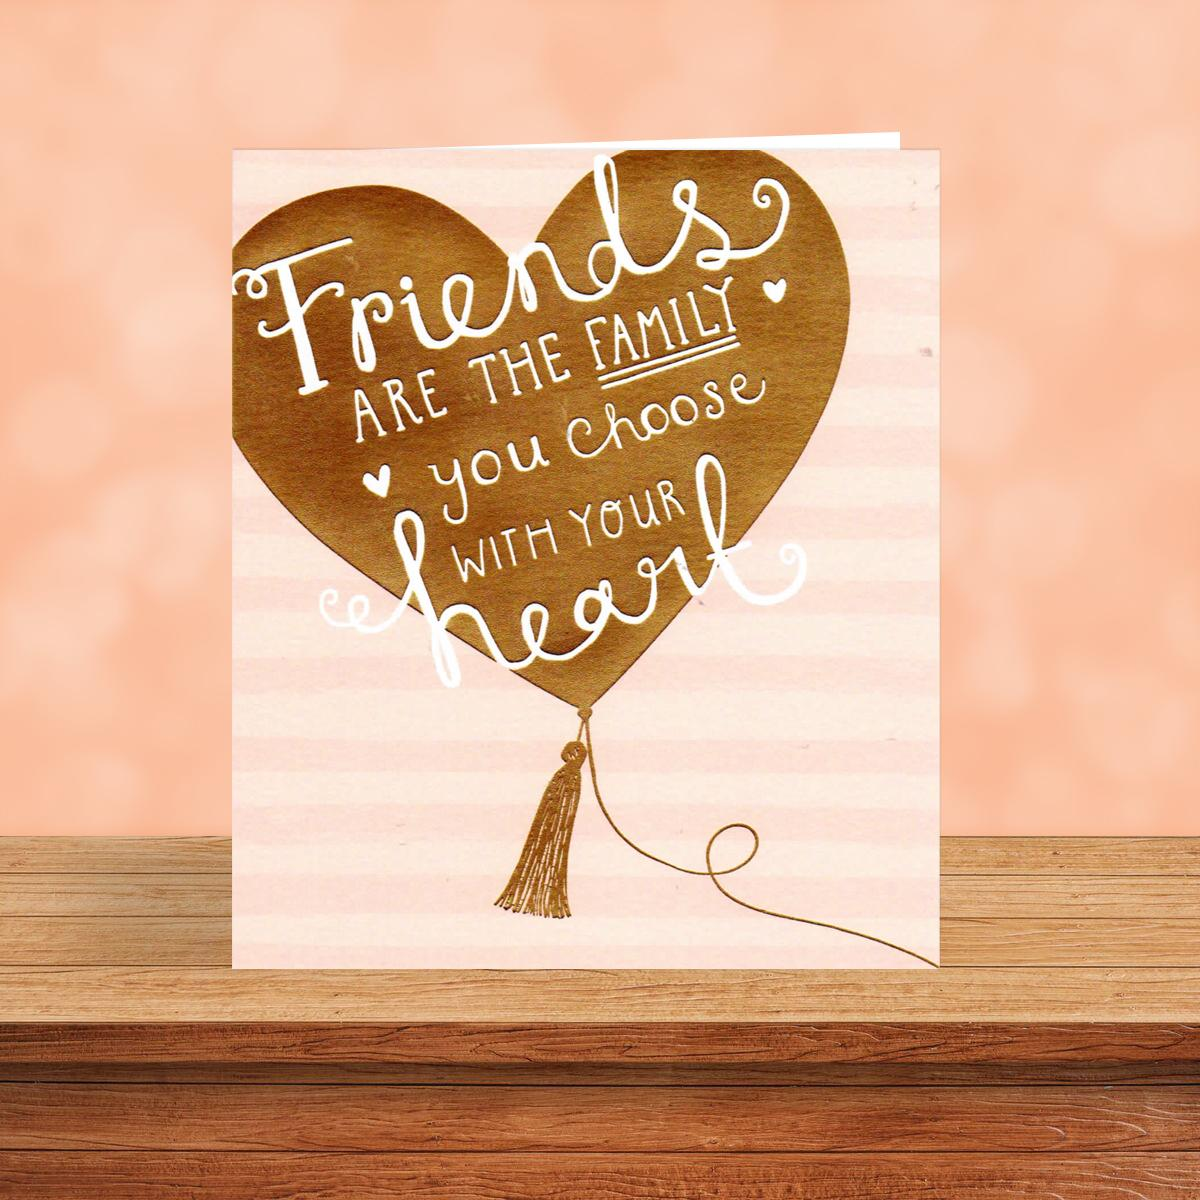 Gold Balloon Heart Friend Birthday Card Sitting On A Display Shelf